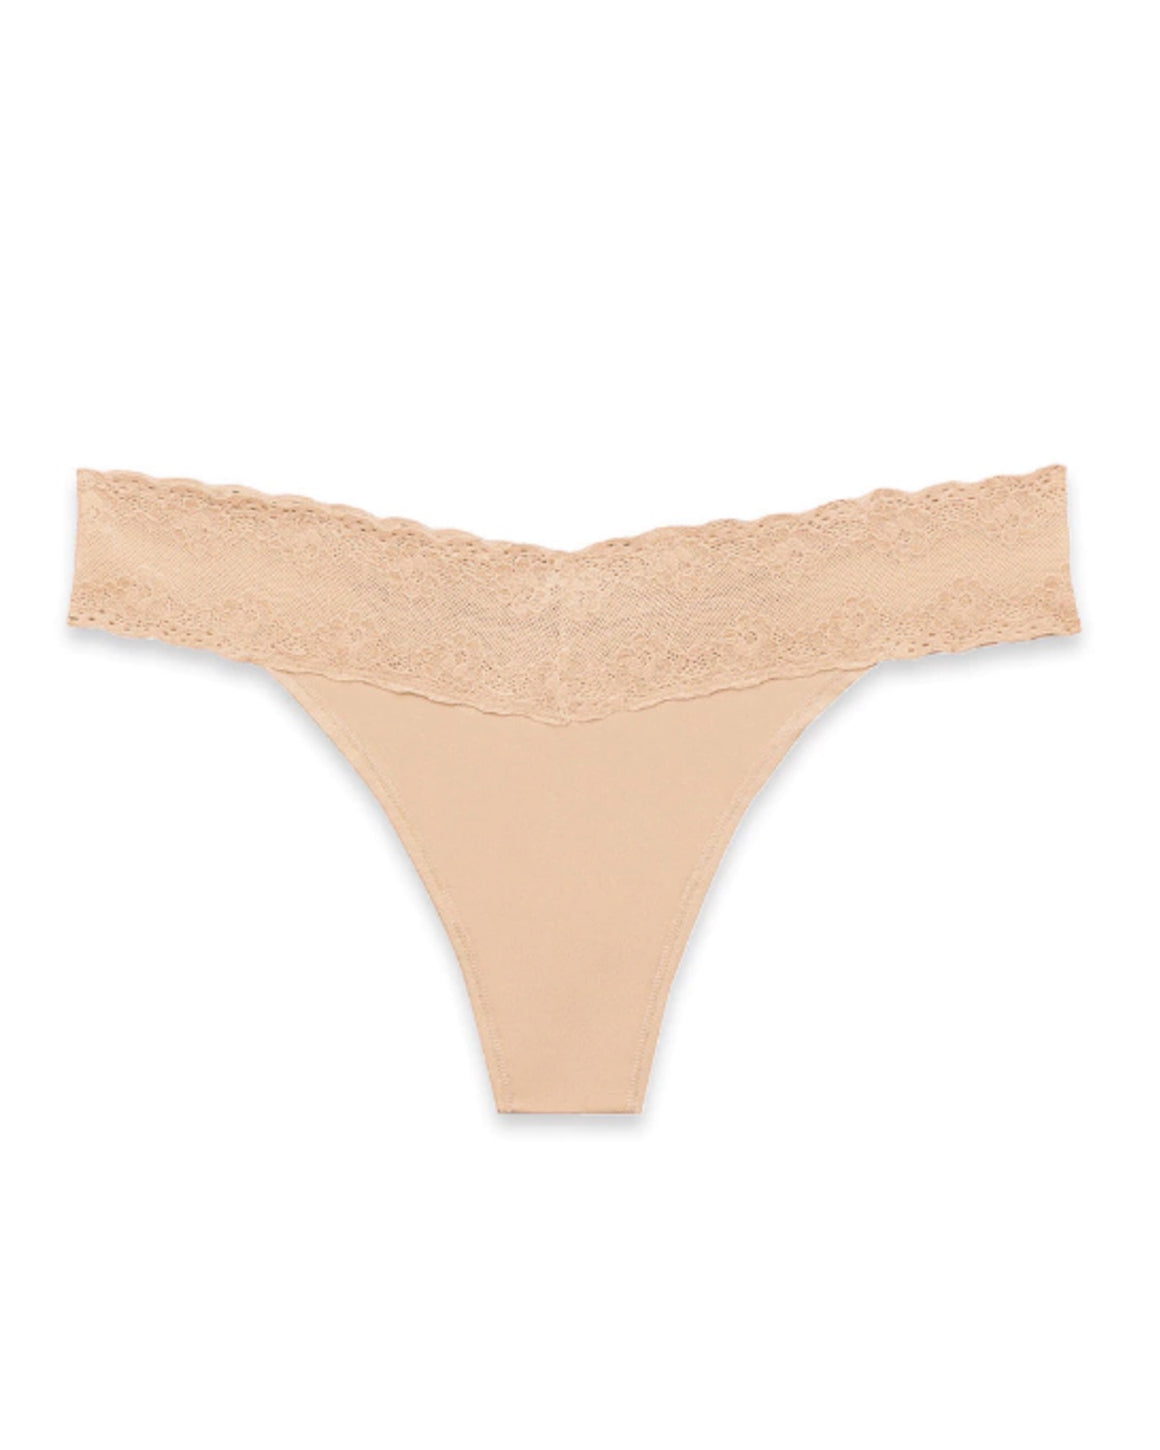 Bliss Perfection One Size Thong